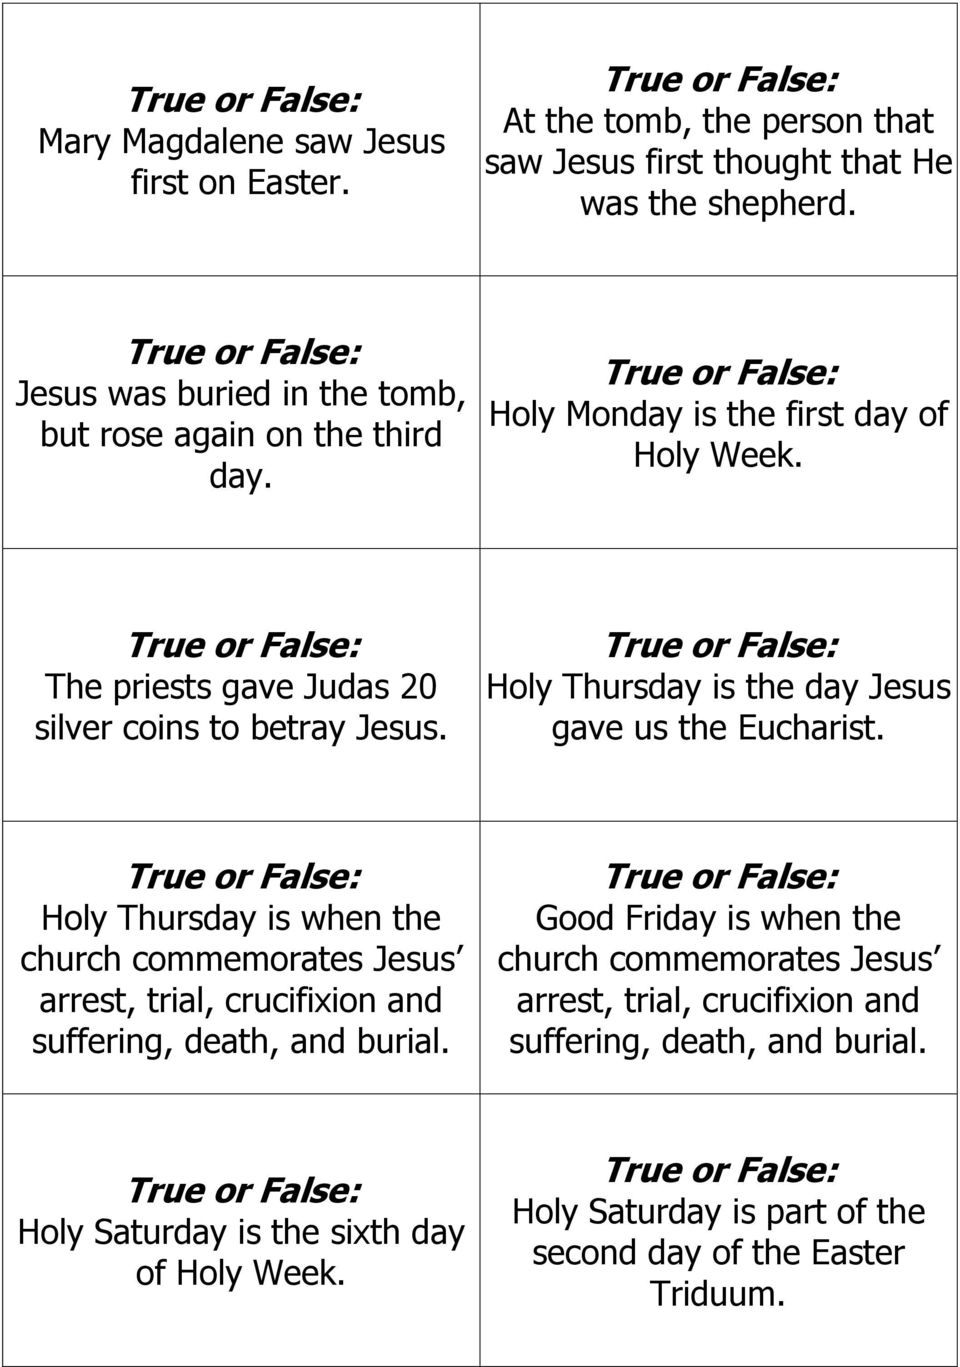 Holy Thursday is the day Jesus gave us the Eucharist. Holy Thursday is when the church commemorates Jesus arrest, trial, crucifixion and suffering, death, and burial.